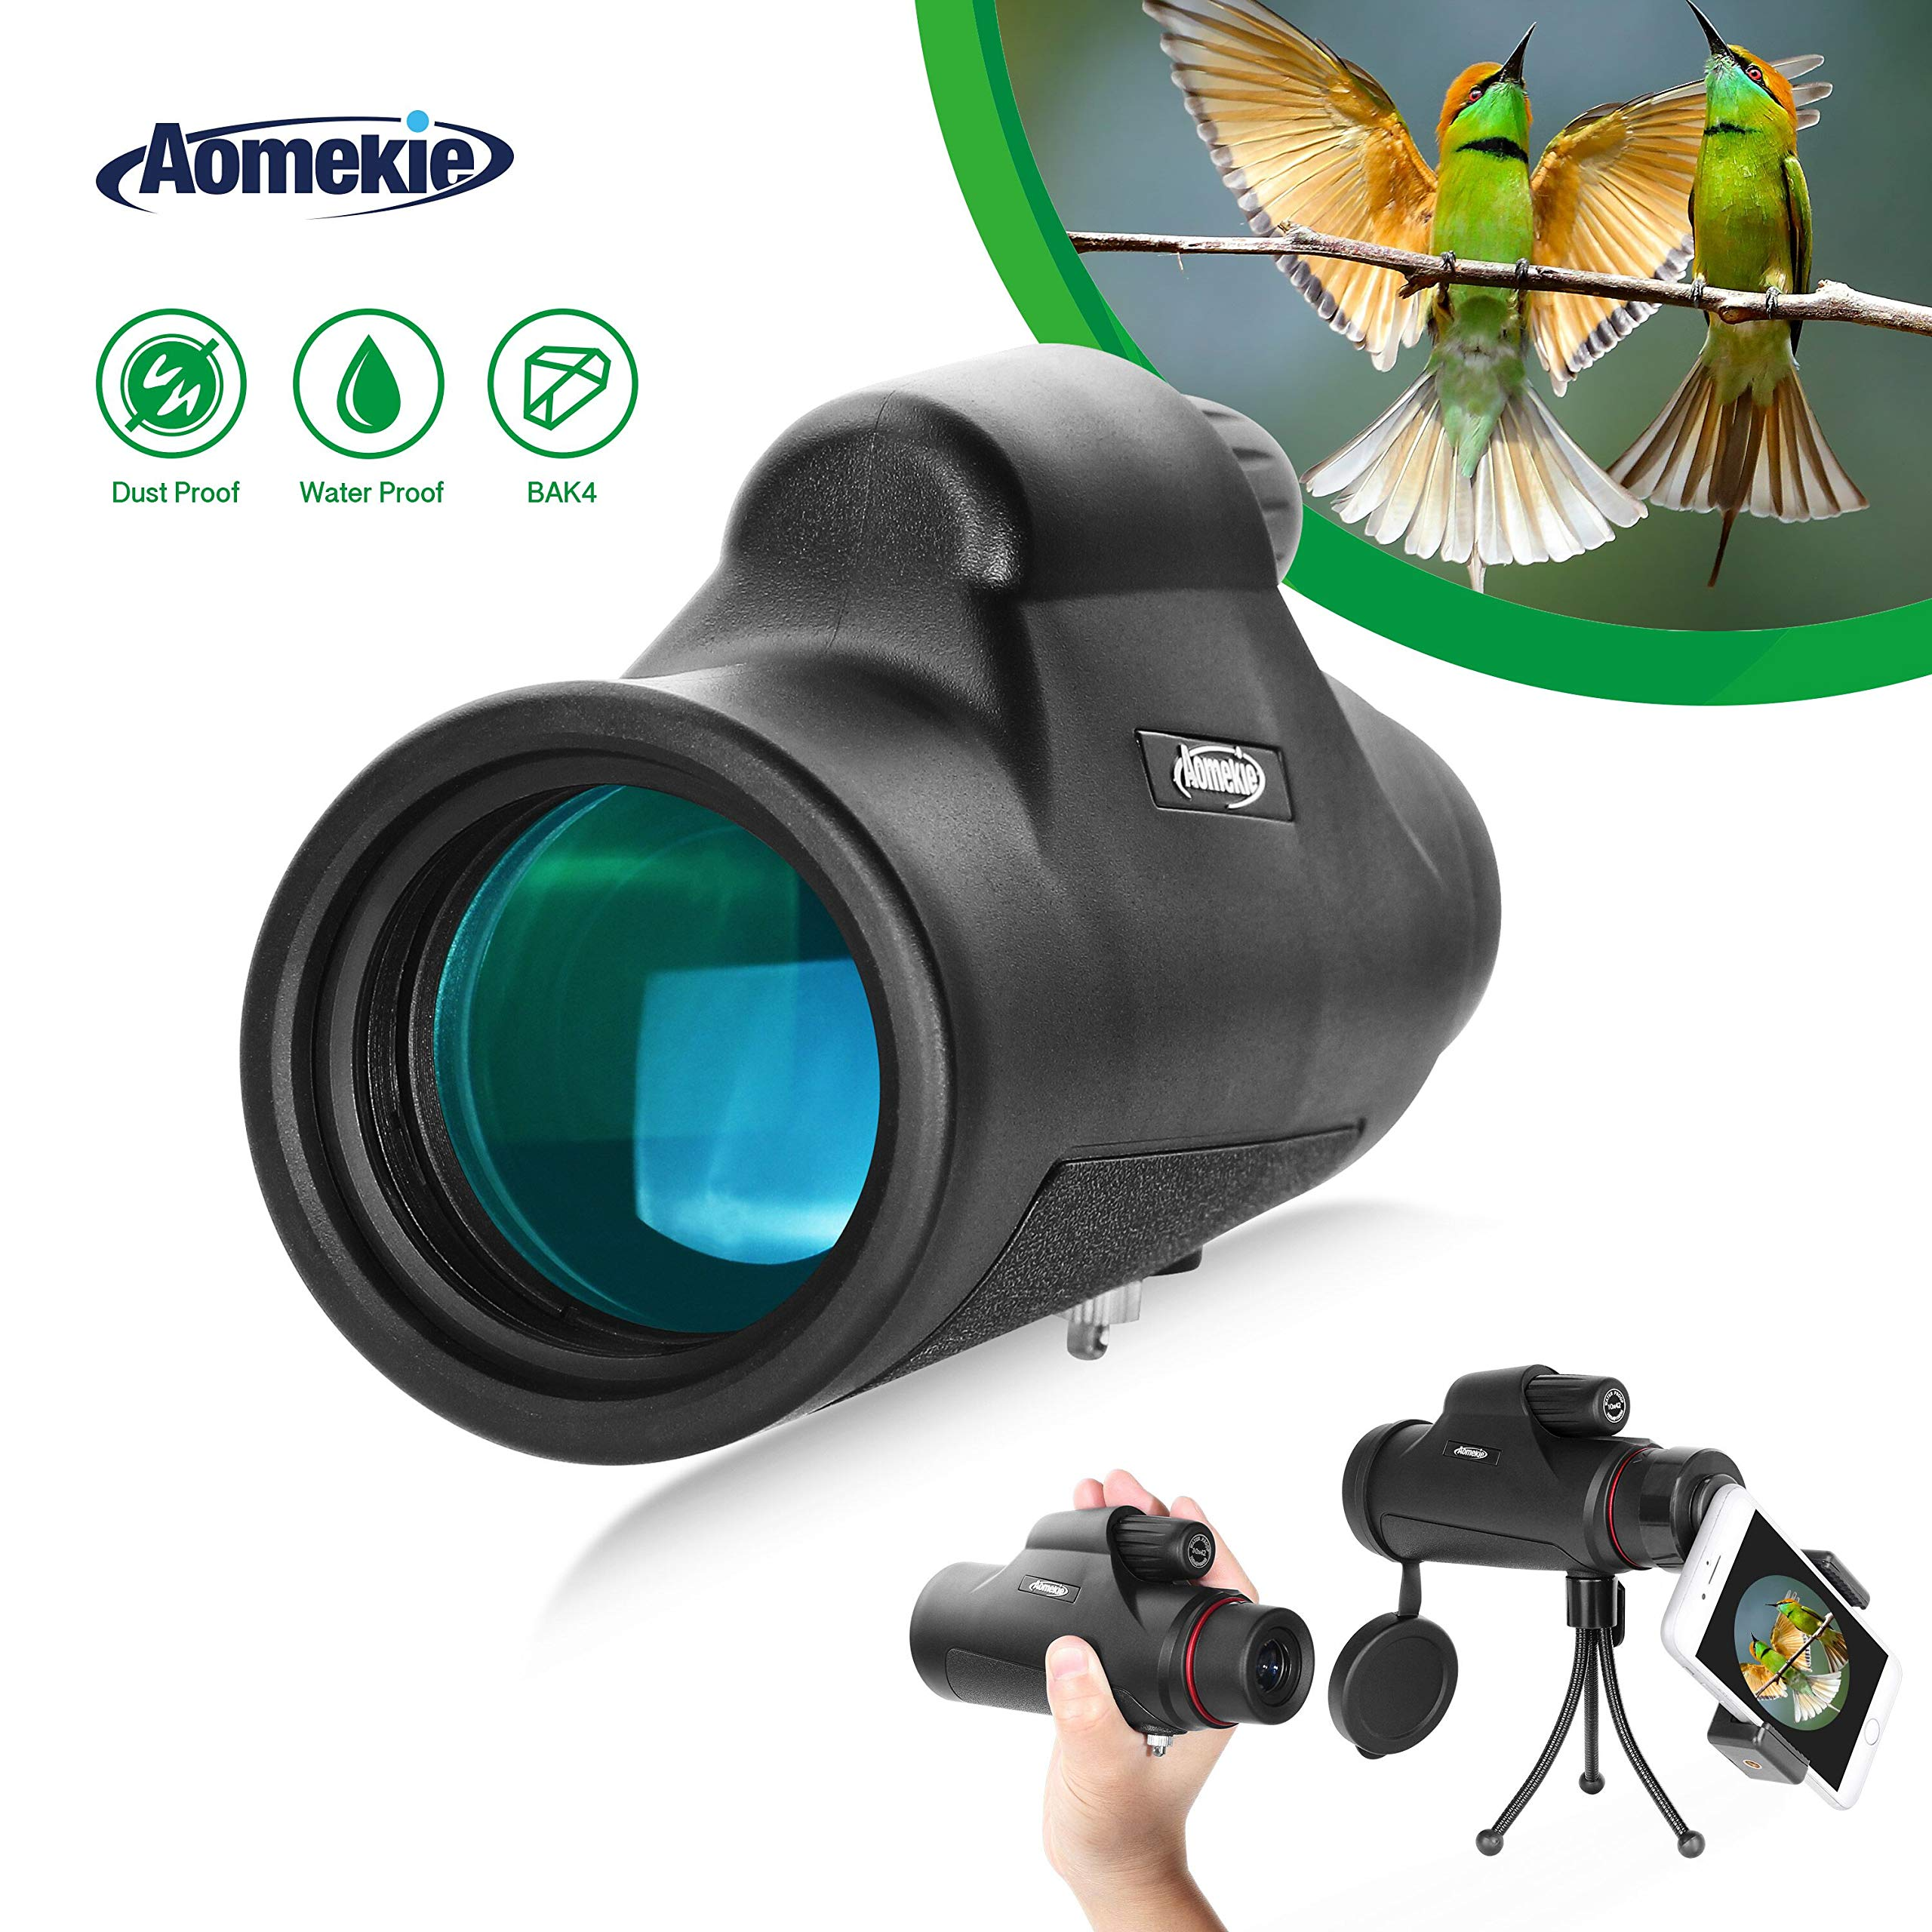 Aomekie 10x42 Monocular Telescope BAK4 Prism FMC Compact Handhled Waterproof High Power Spotting Scope with Phone Adapter Tripod and Carrying Bag for Adults Kids Hunting Birdwatching Golf Camping by AOMEKIE